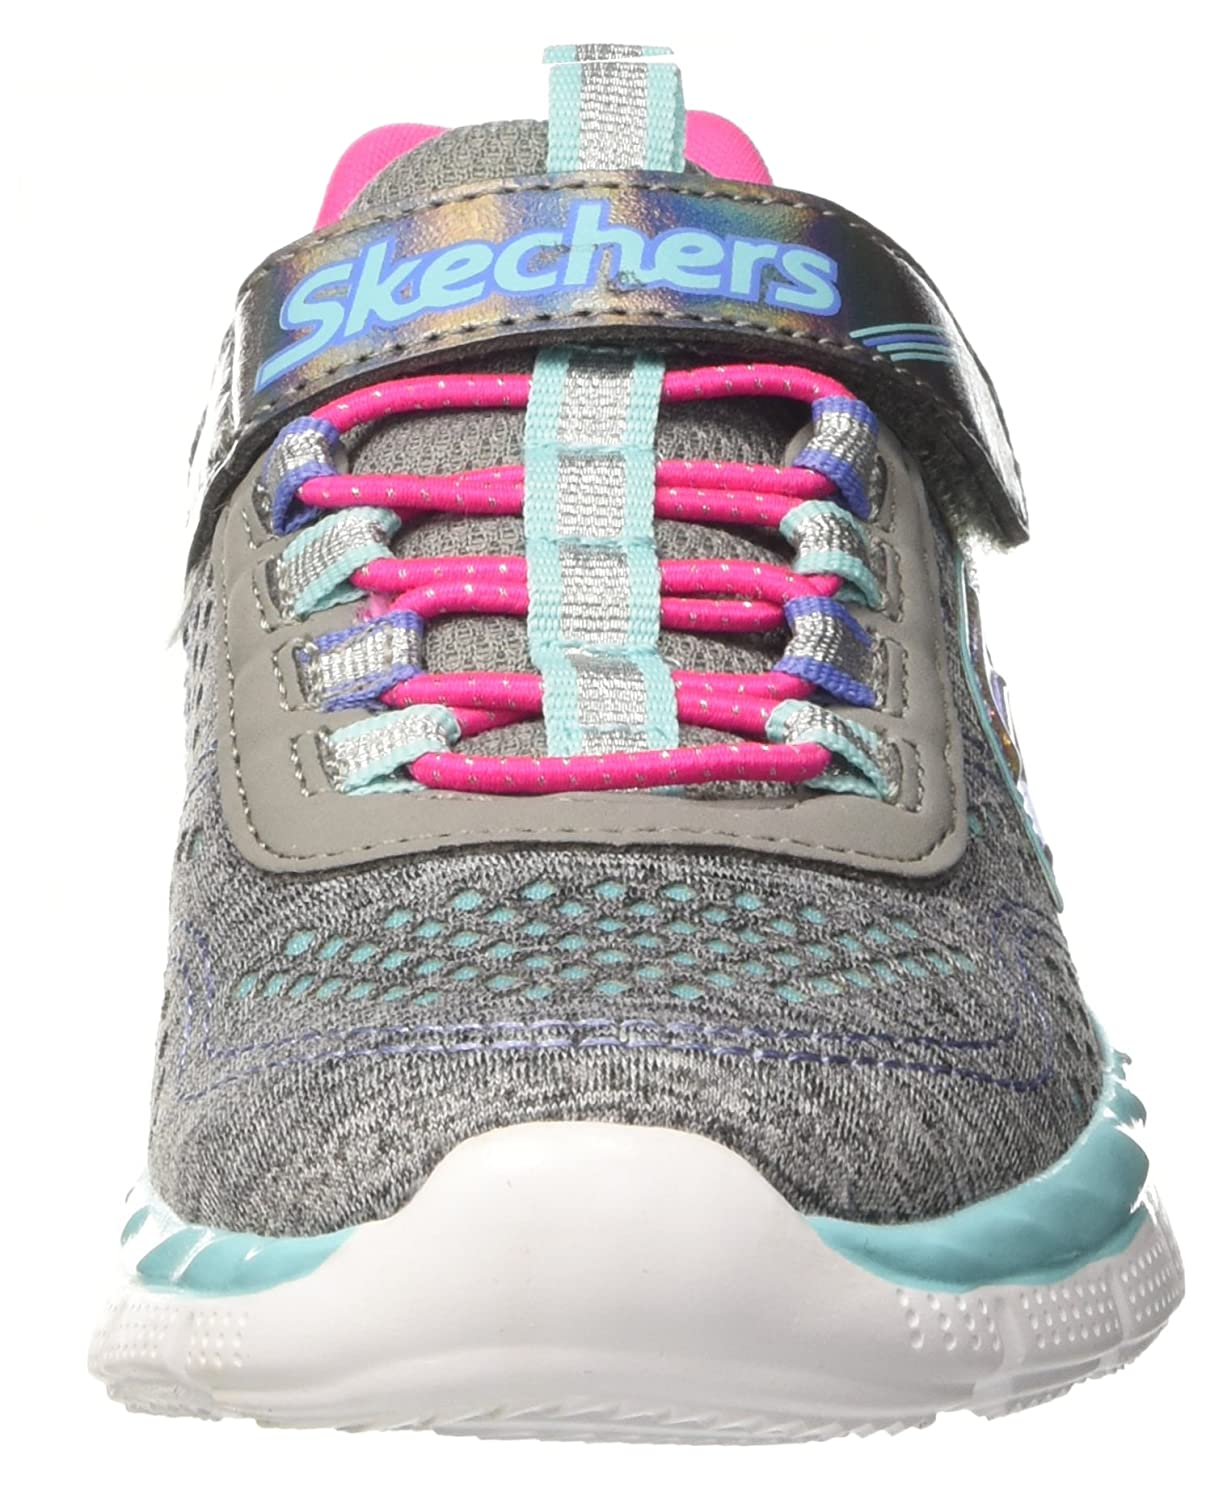 Skechers Air-Appeal-Crushing Cutie, Entrenadores para Niñas, Gris (Grey/Multi), 37 EU